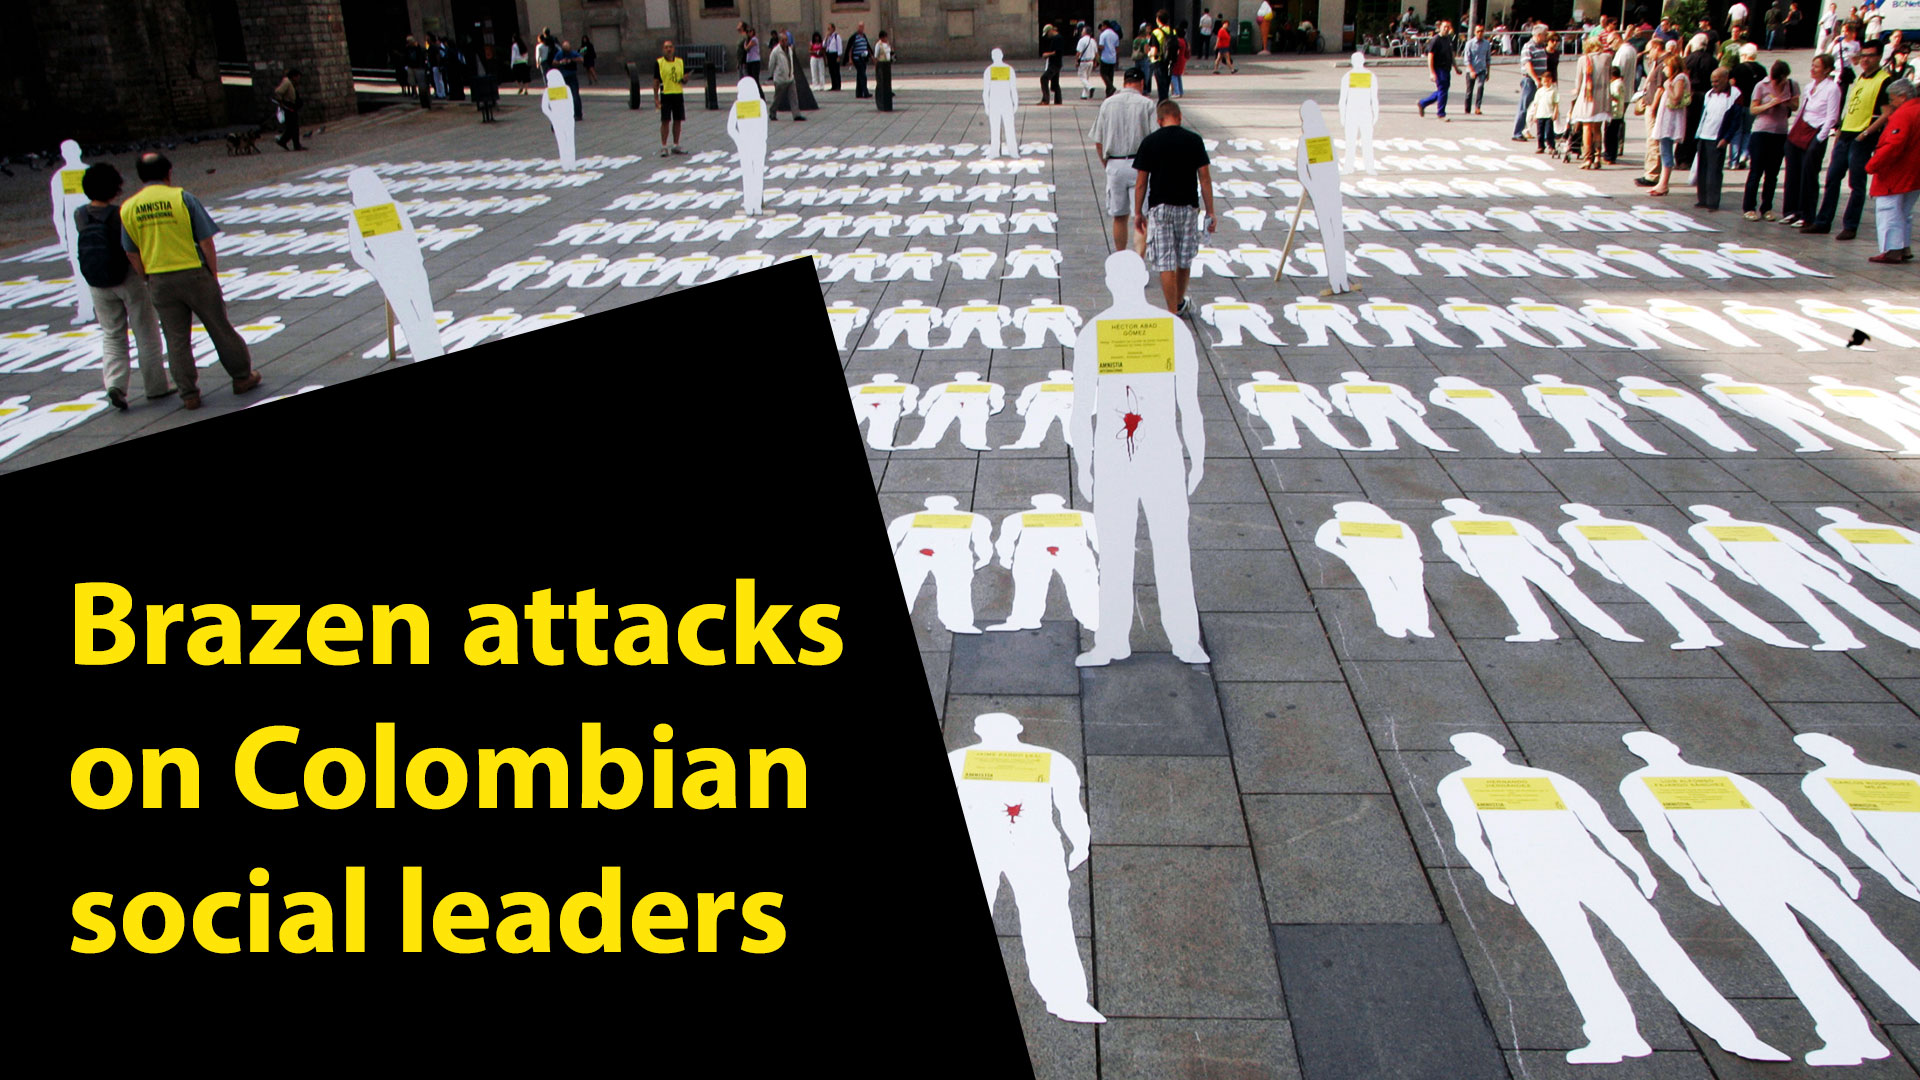 Assassination of colombian social leaders